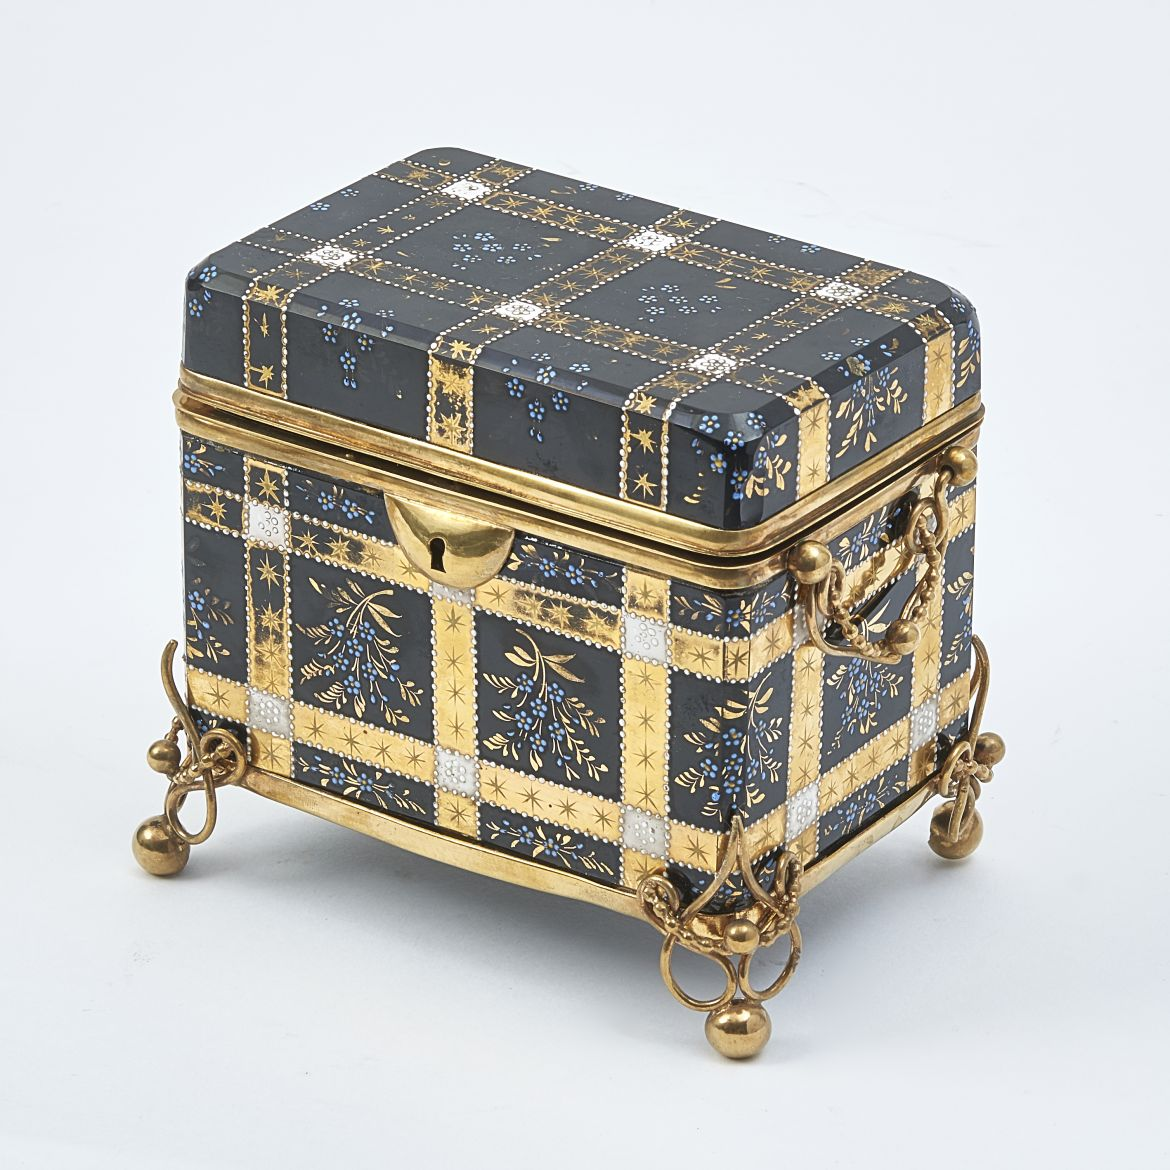 Bohemian Glass Box Attributed To Moser